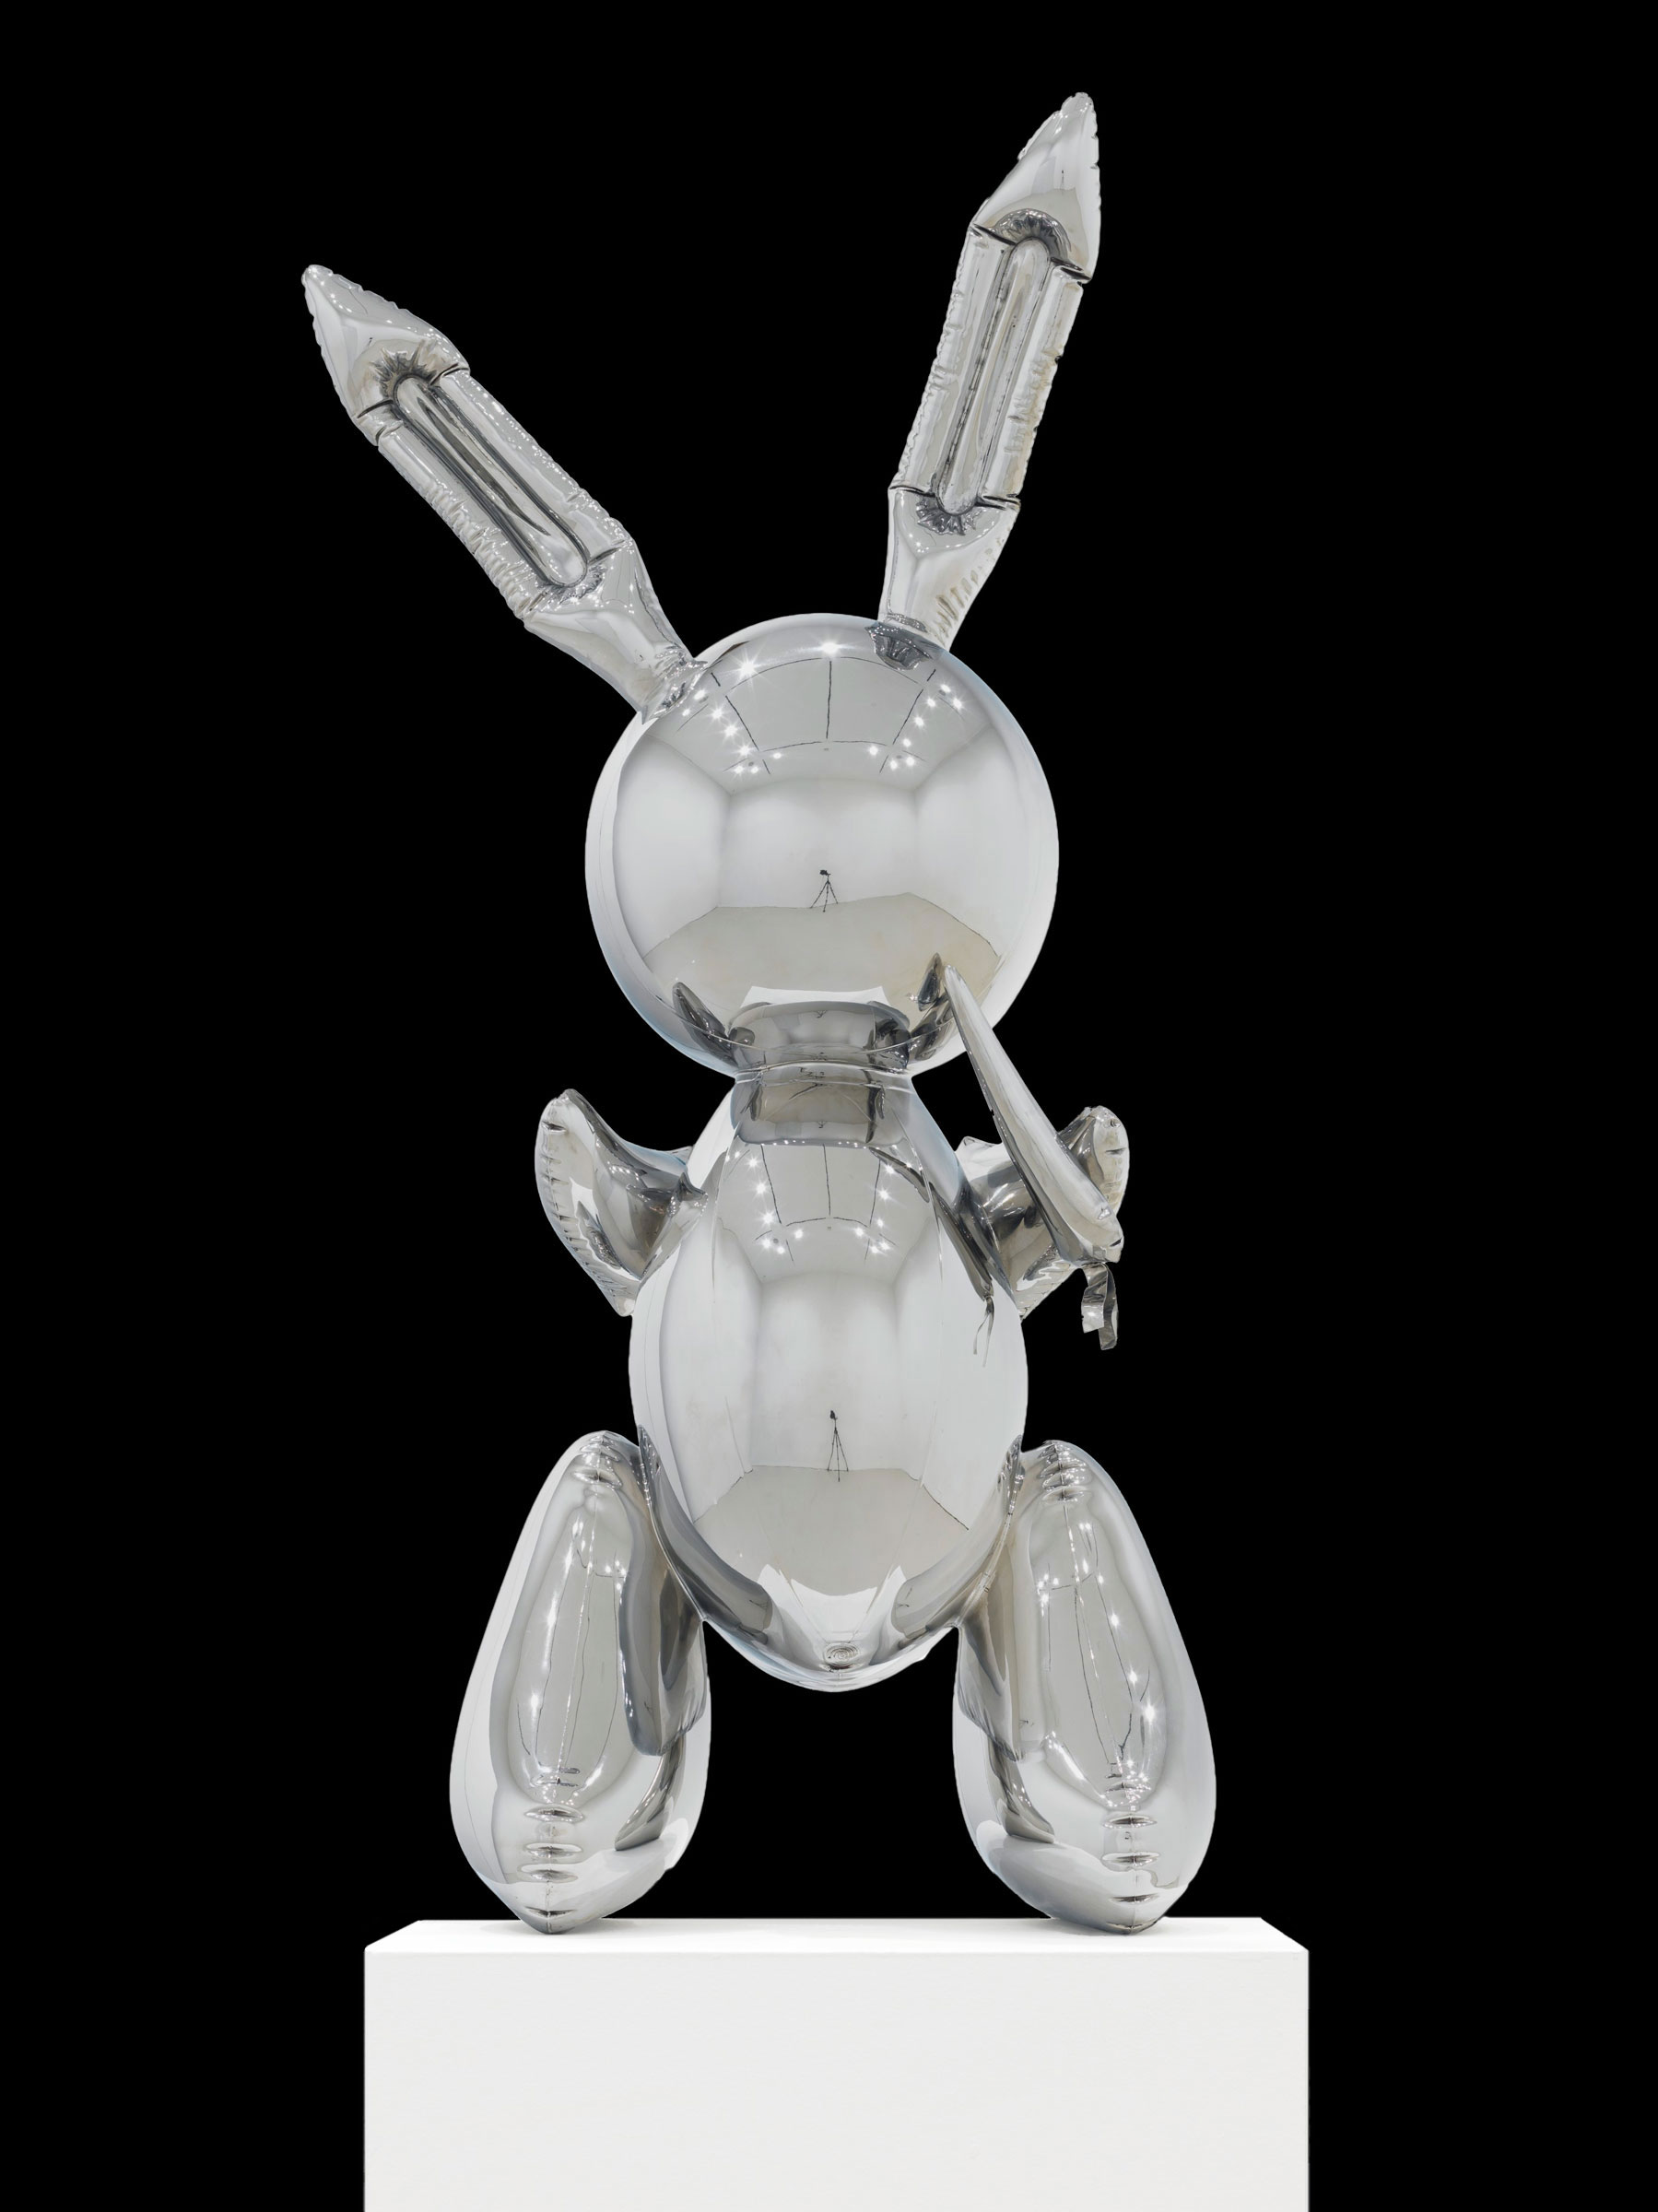 Rabbit by Jeff Koons — a chance to own the controversy